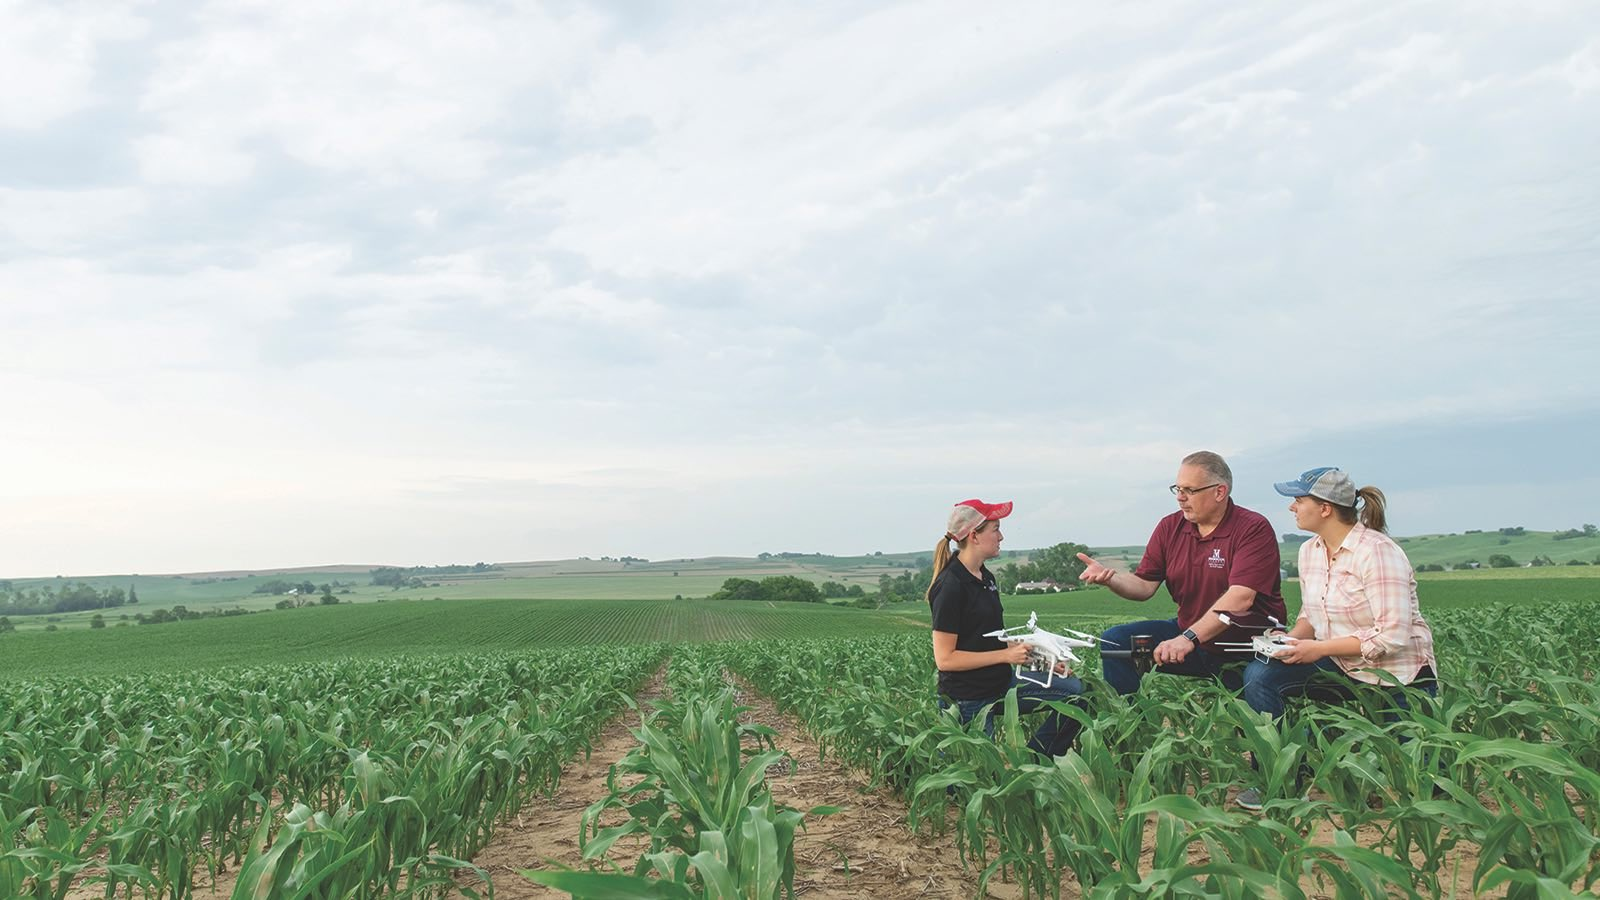 Agriculture students and faculty member Tom Paulsen examine a drone in the corn field